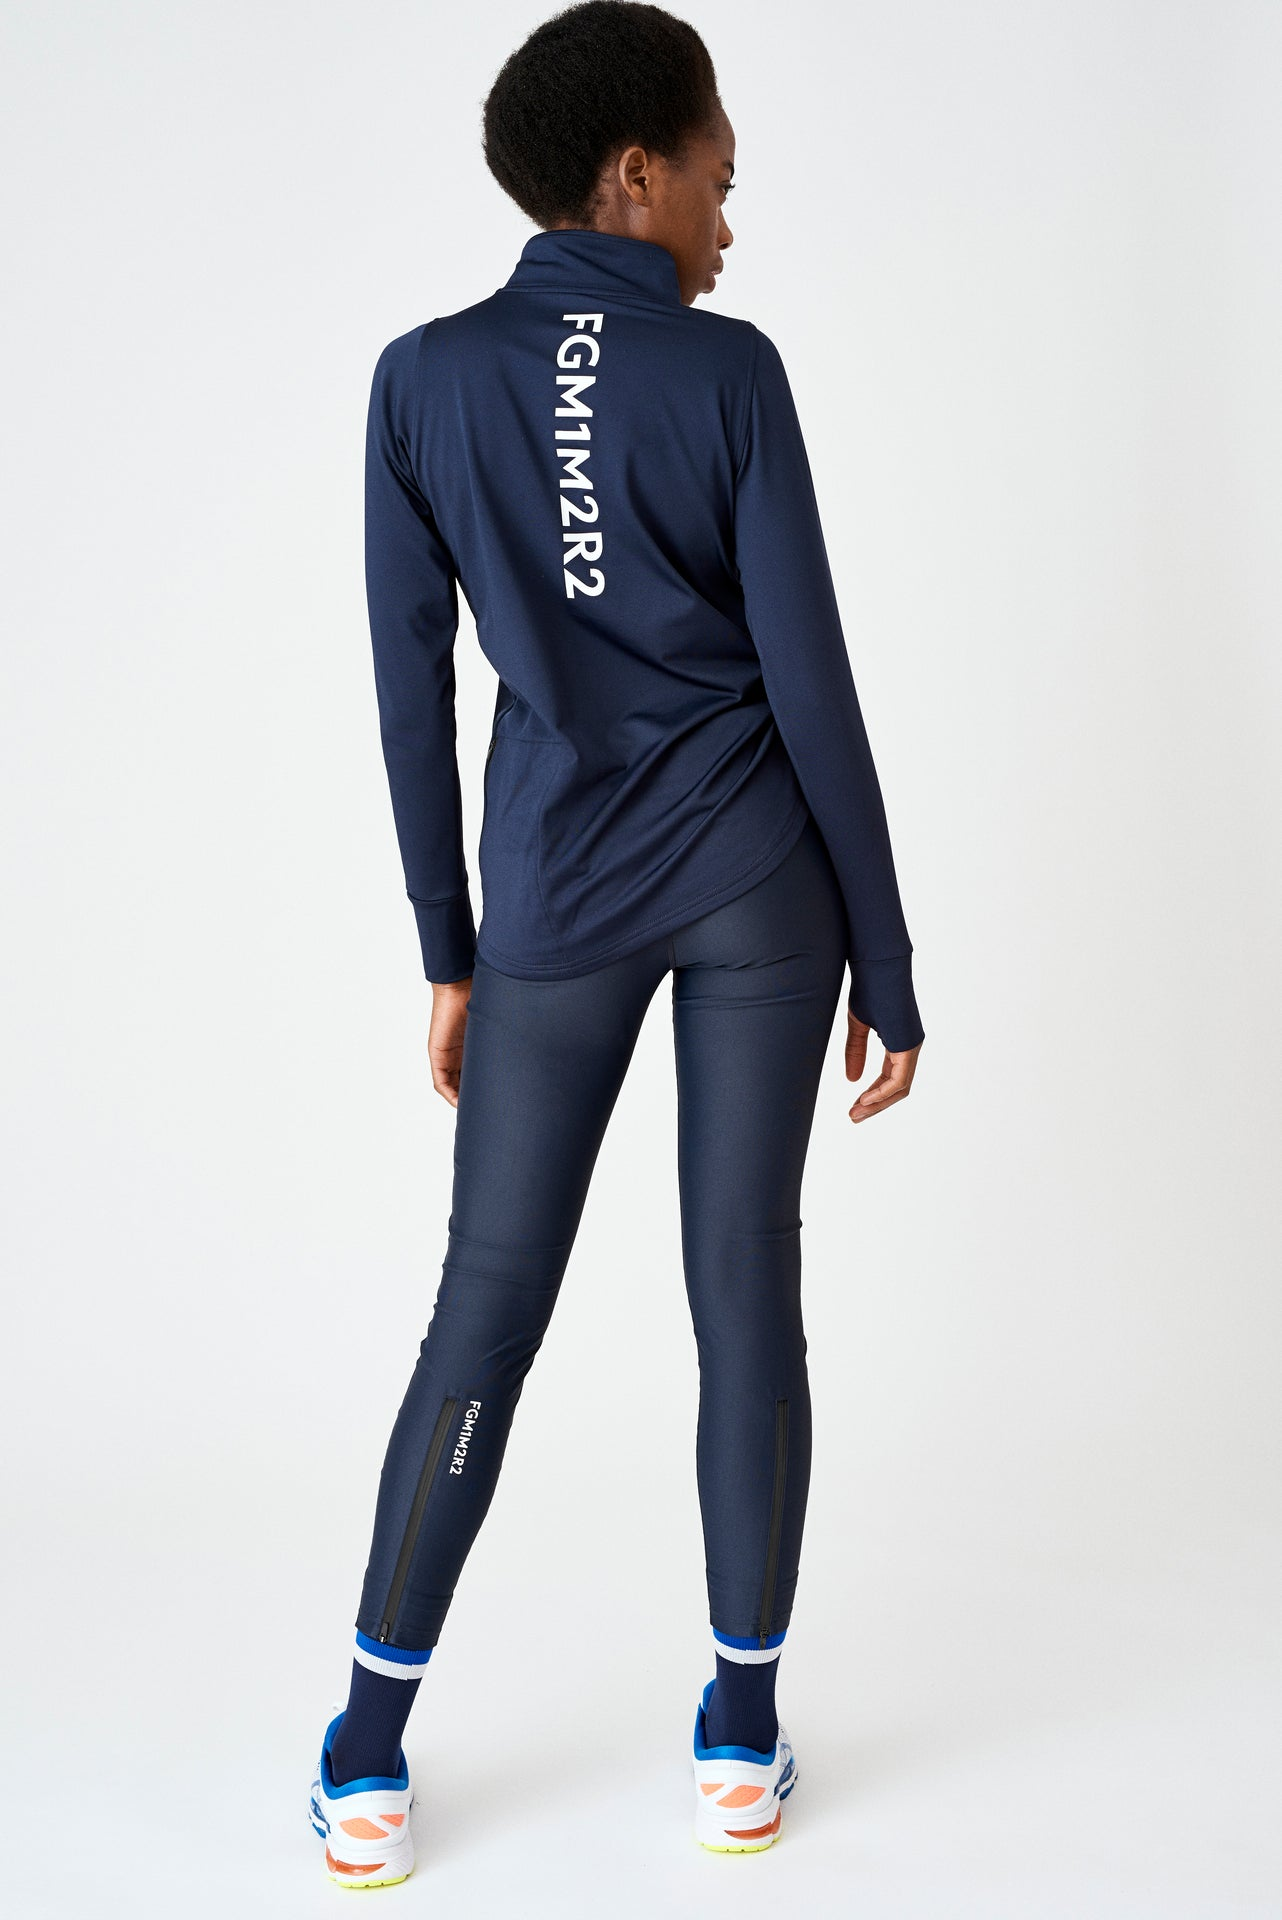 Curie wms running tights